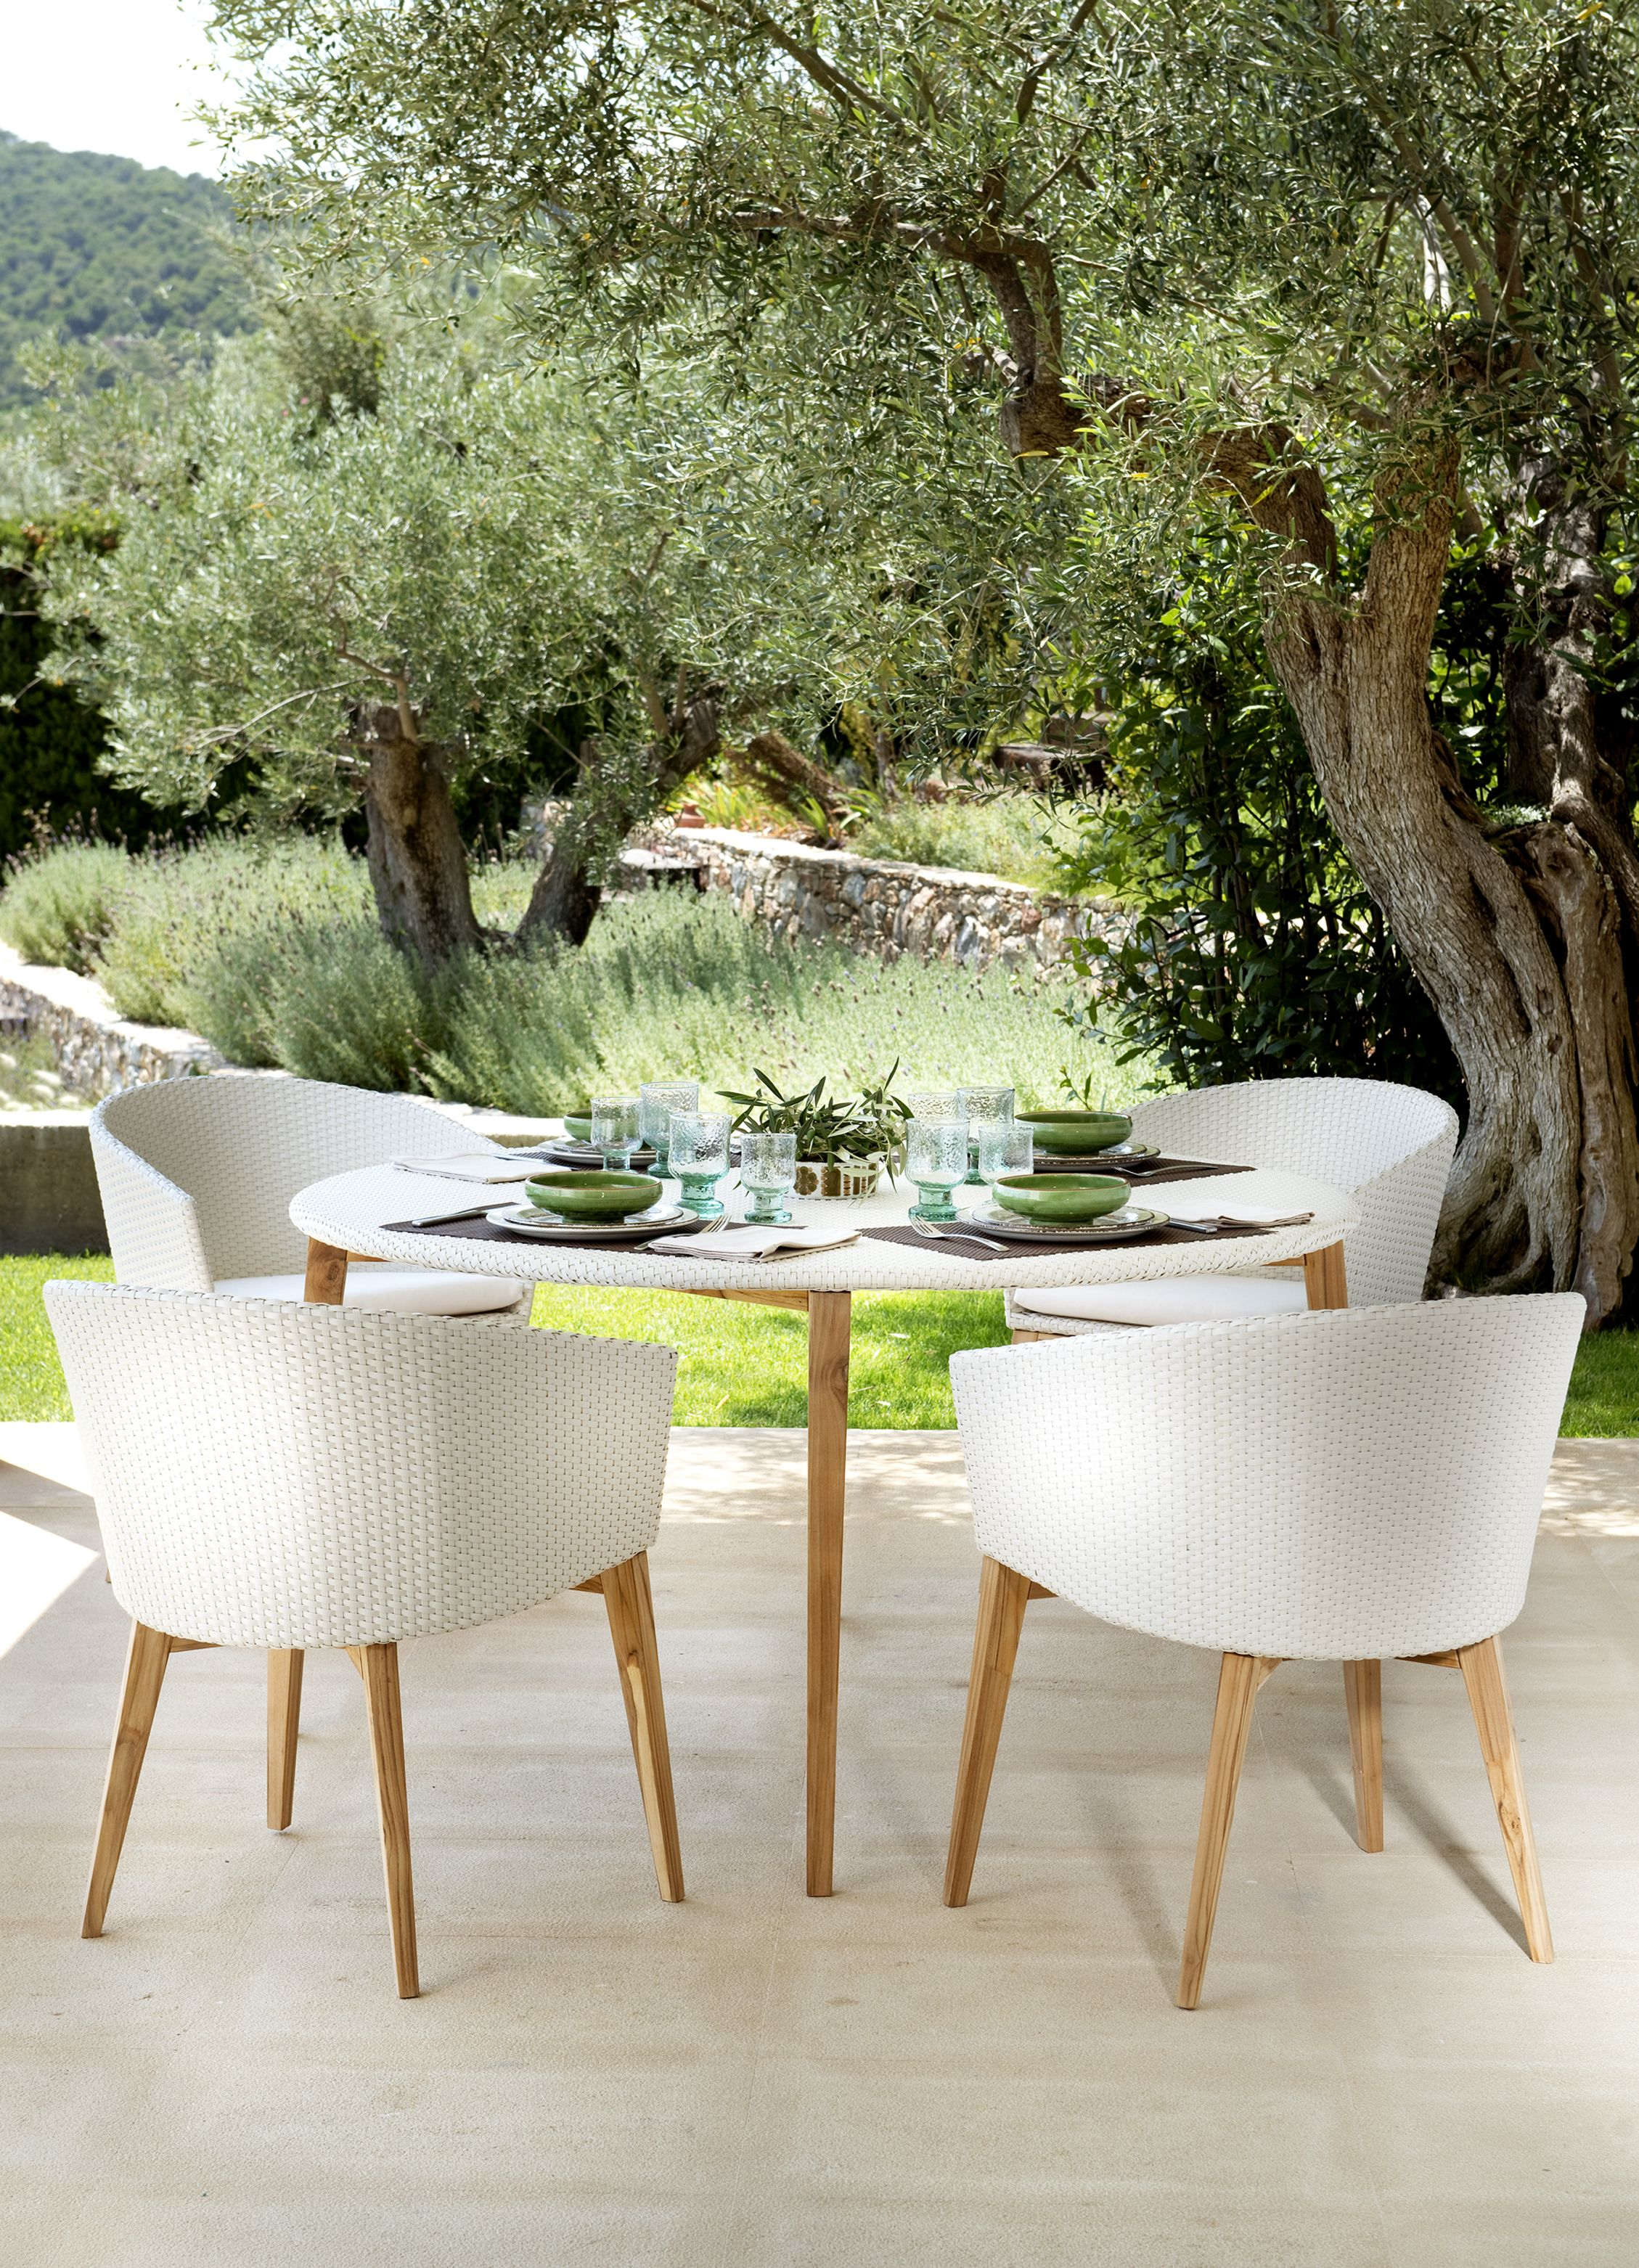 Arc Garden Dining Table Outdoor Furniture Decor Luxury Outdoor Furniture Modern Outdoor Furniture